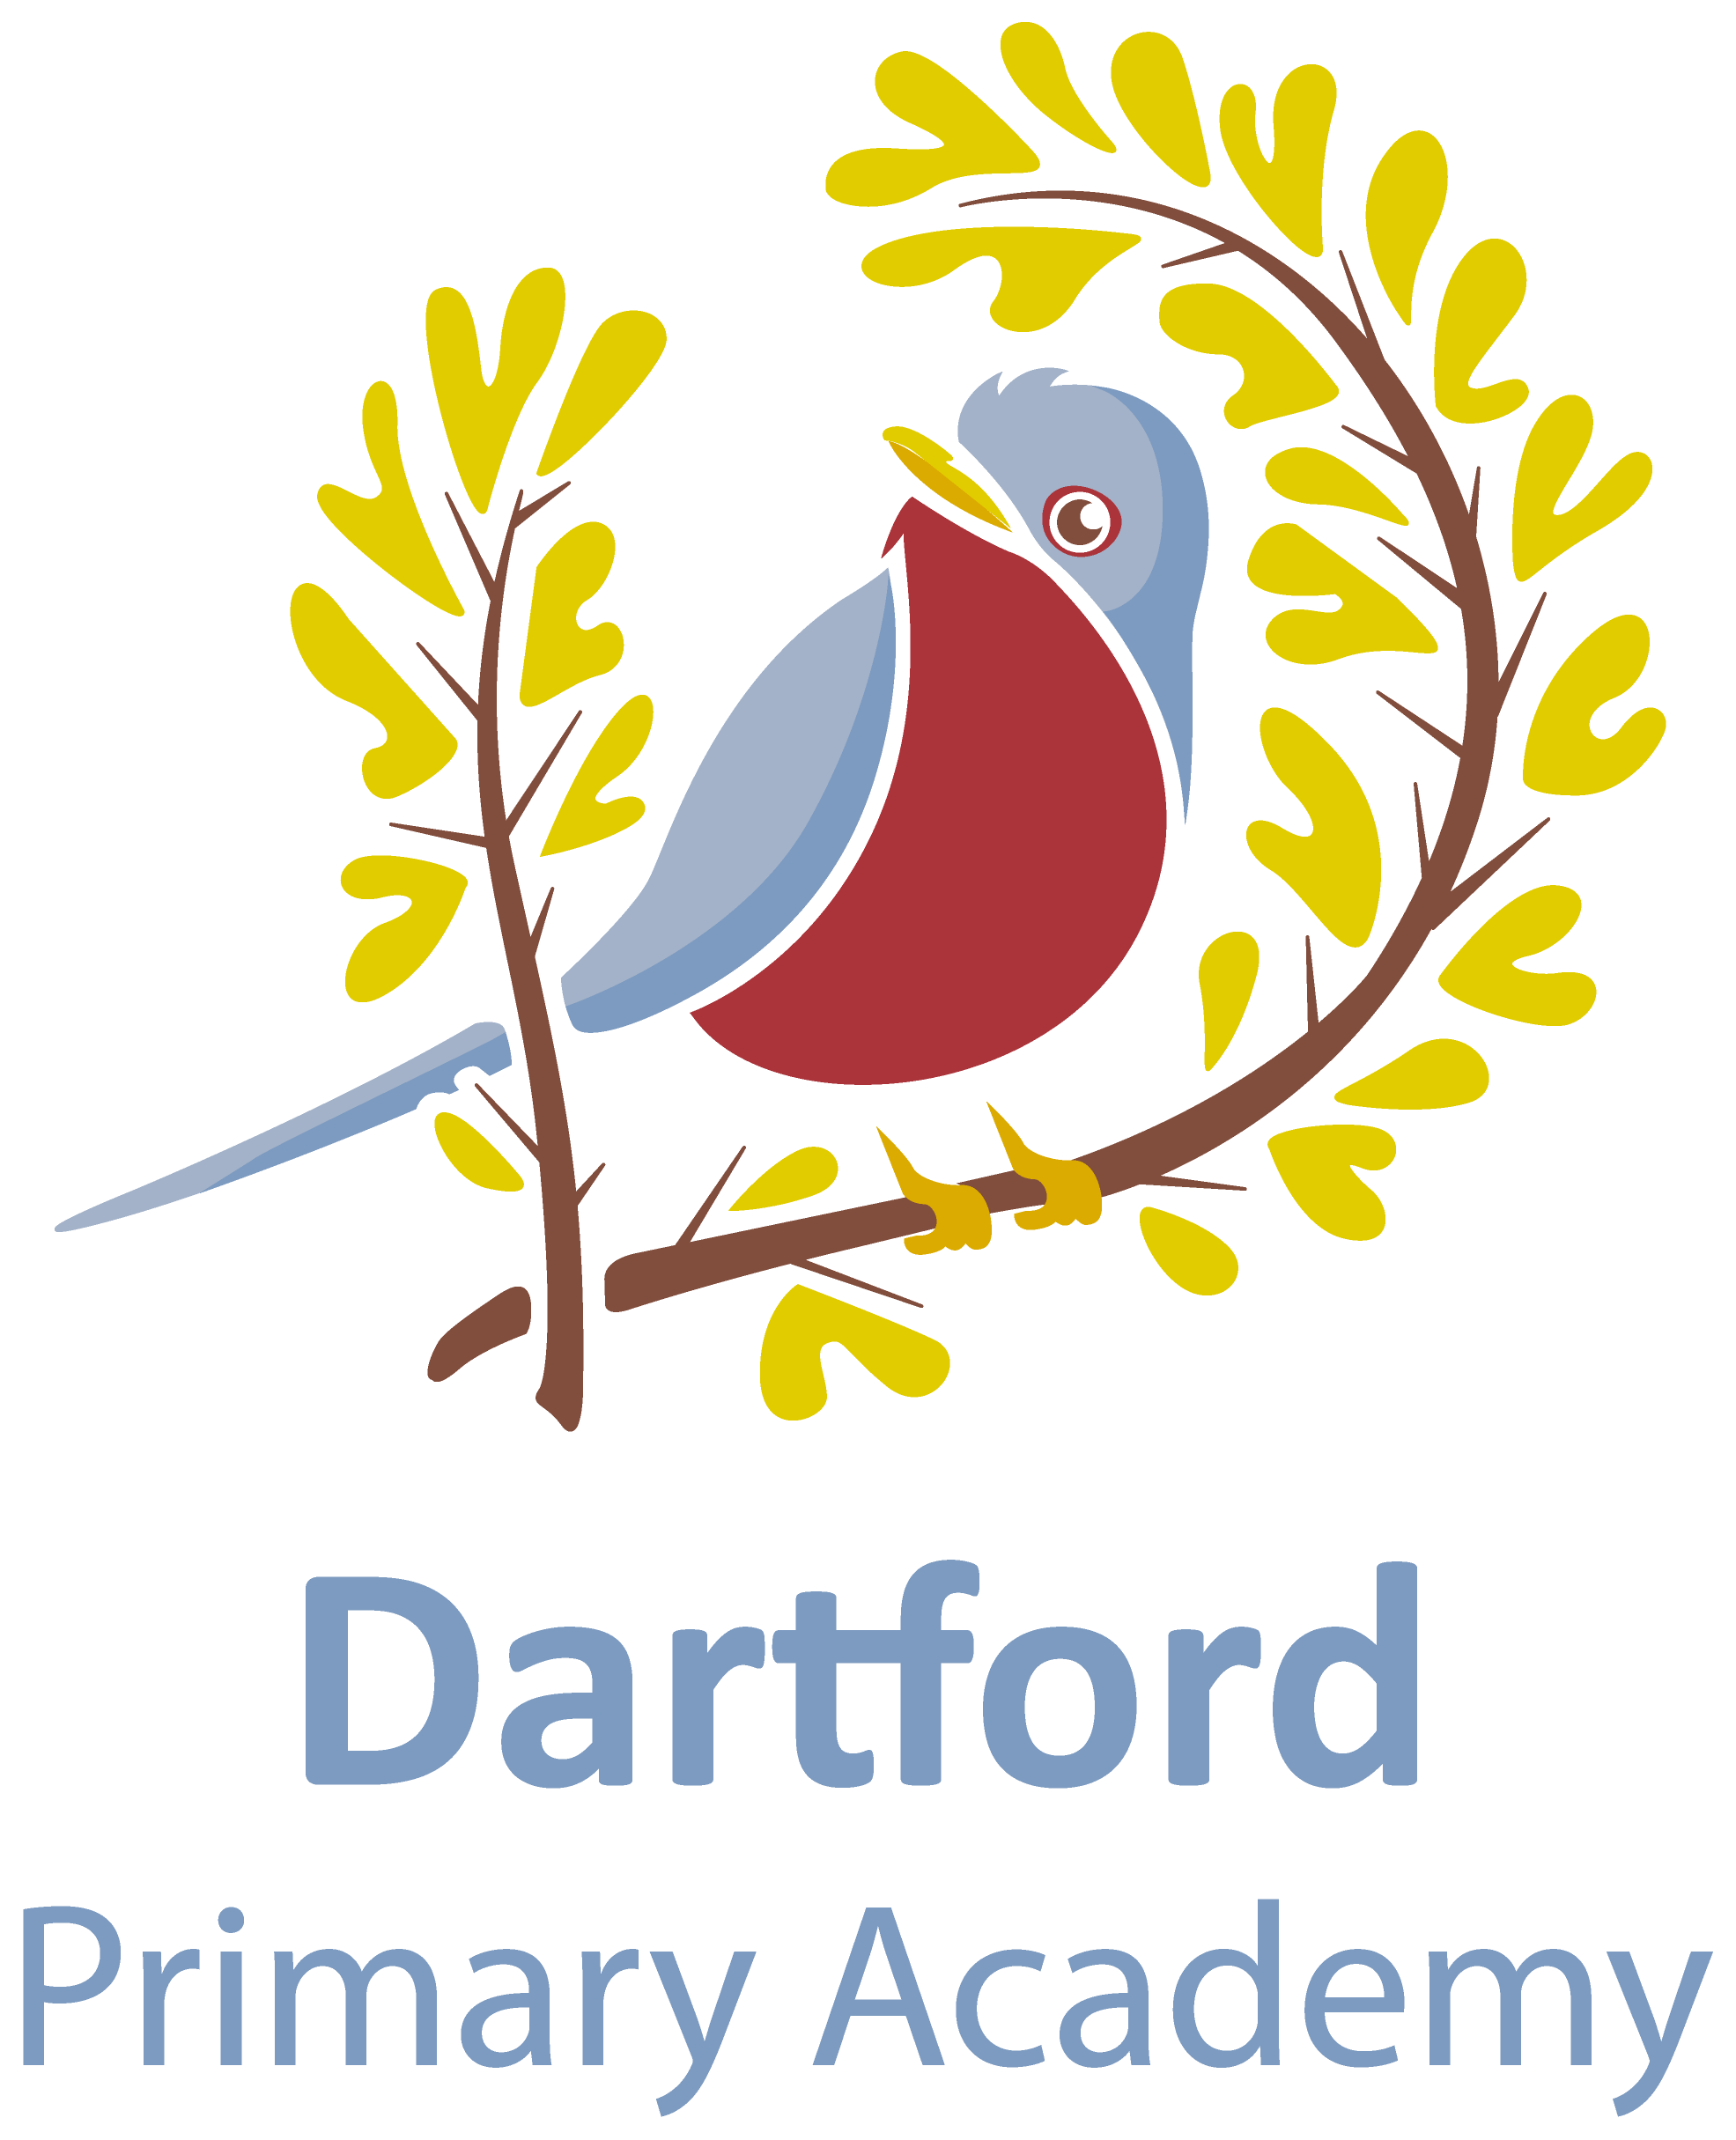 Dartford Primary Academy